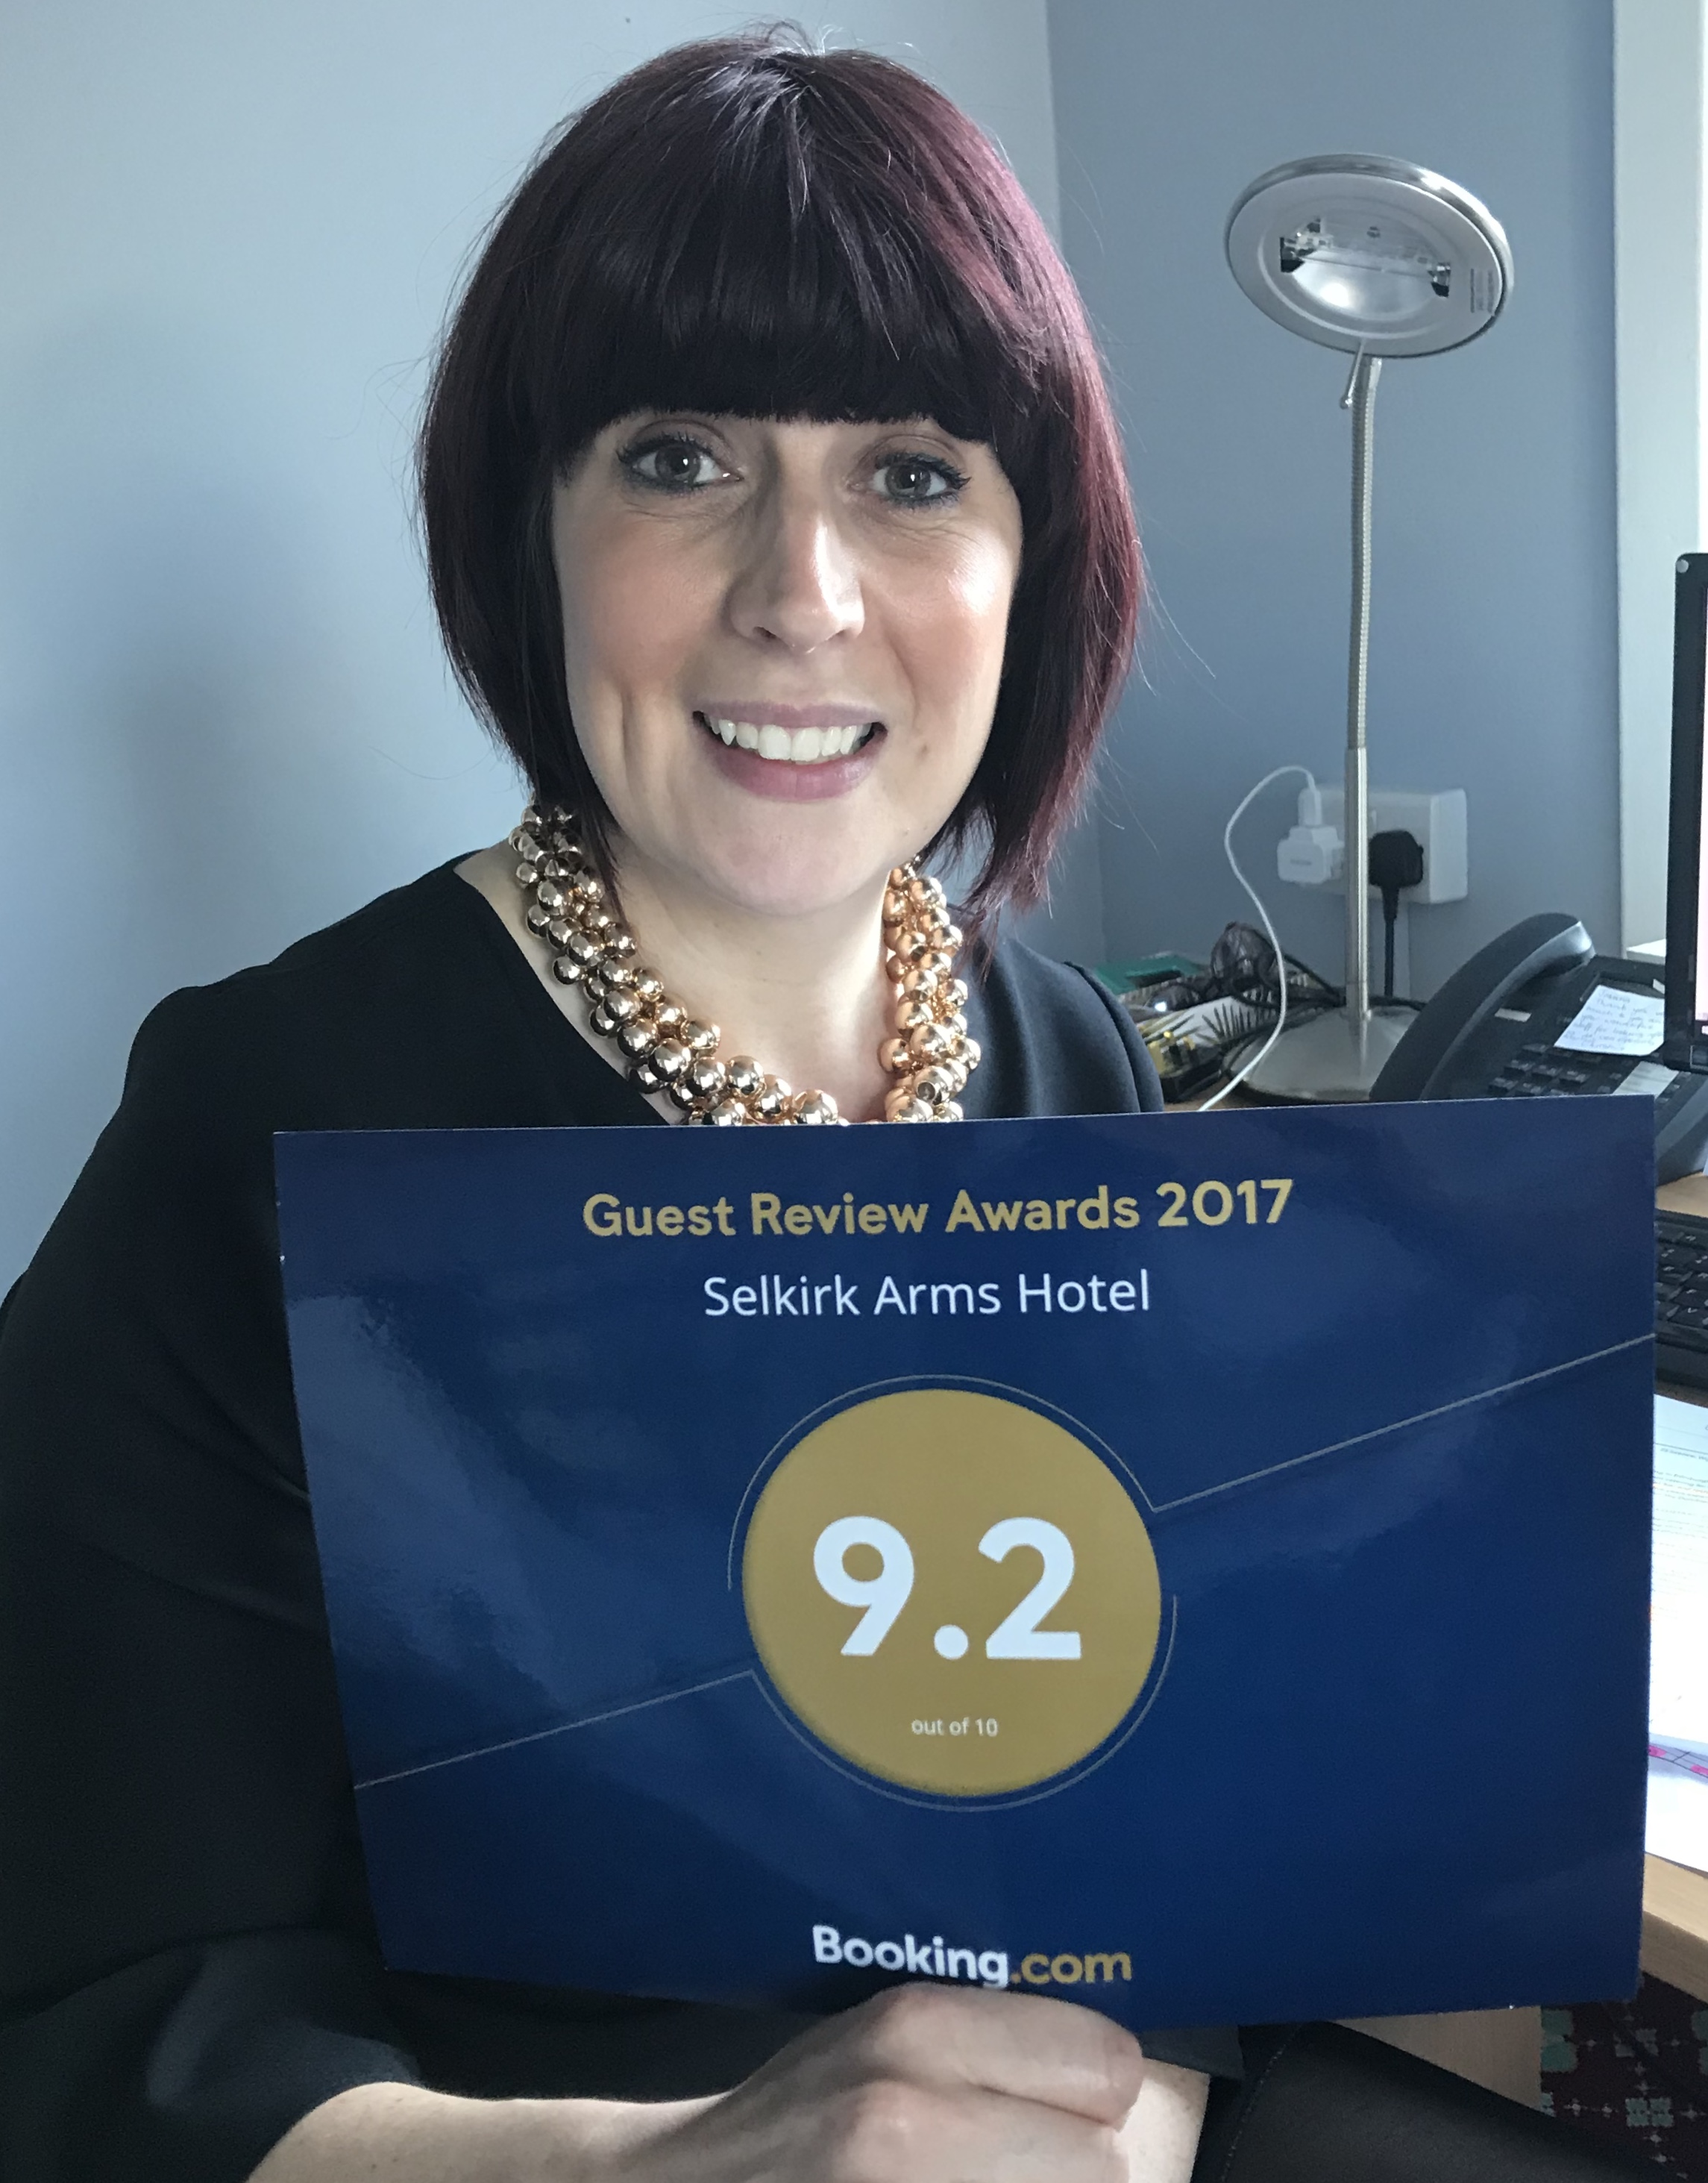 General manager Joanna Scott with our 9.2 booking.com award